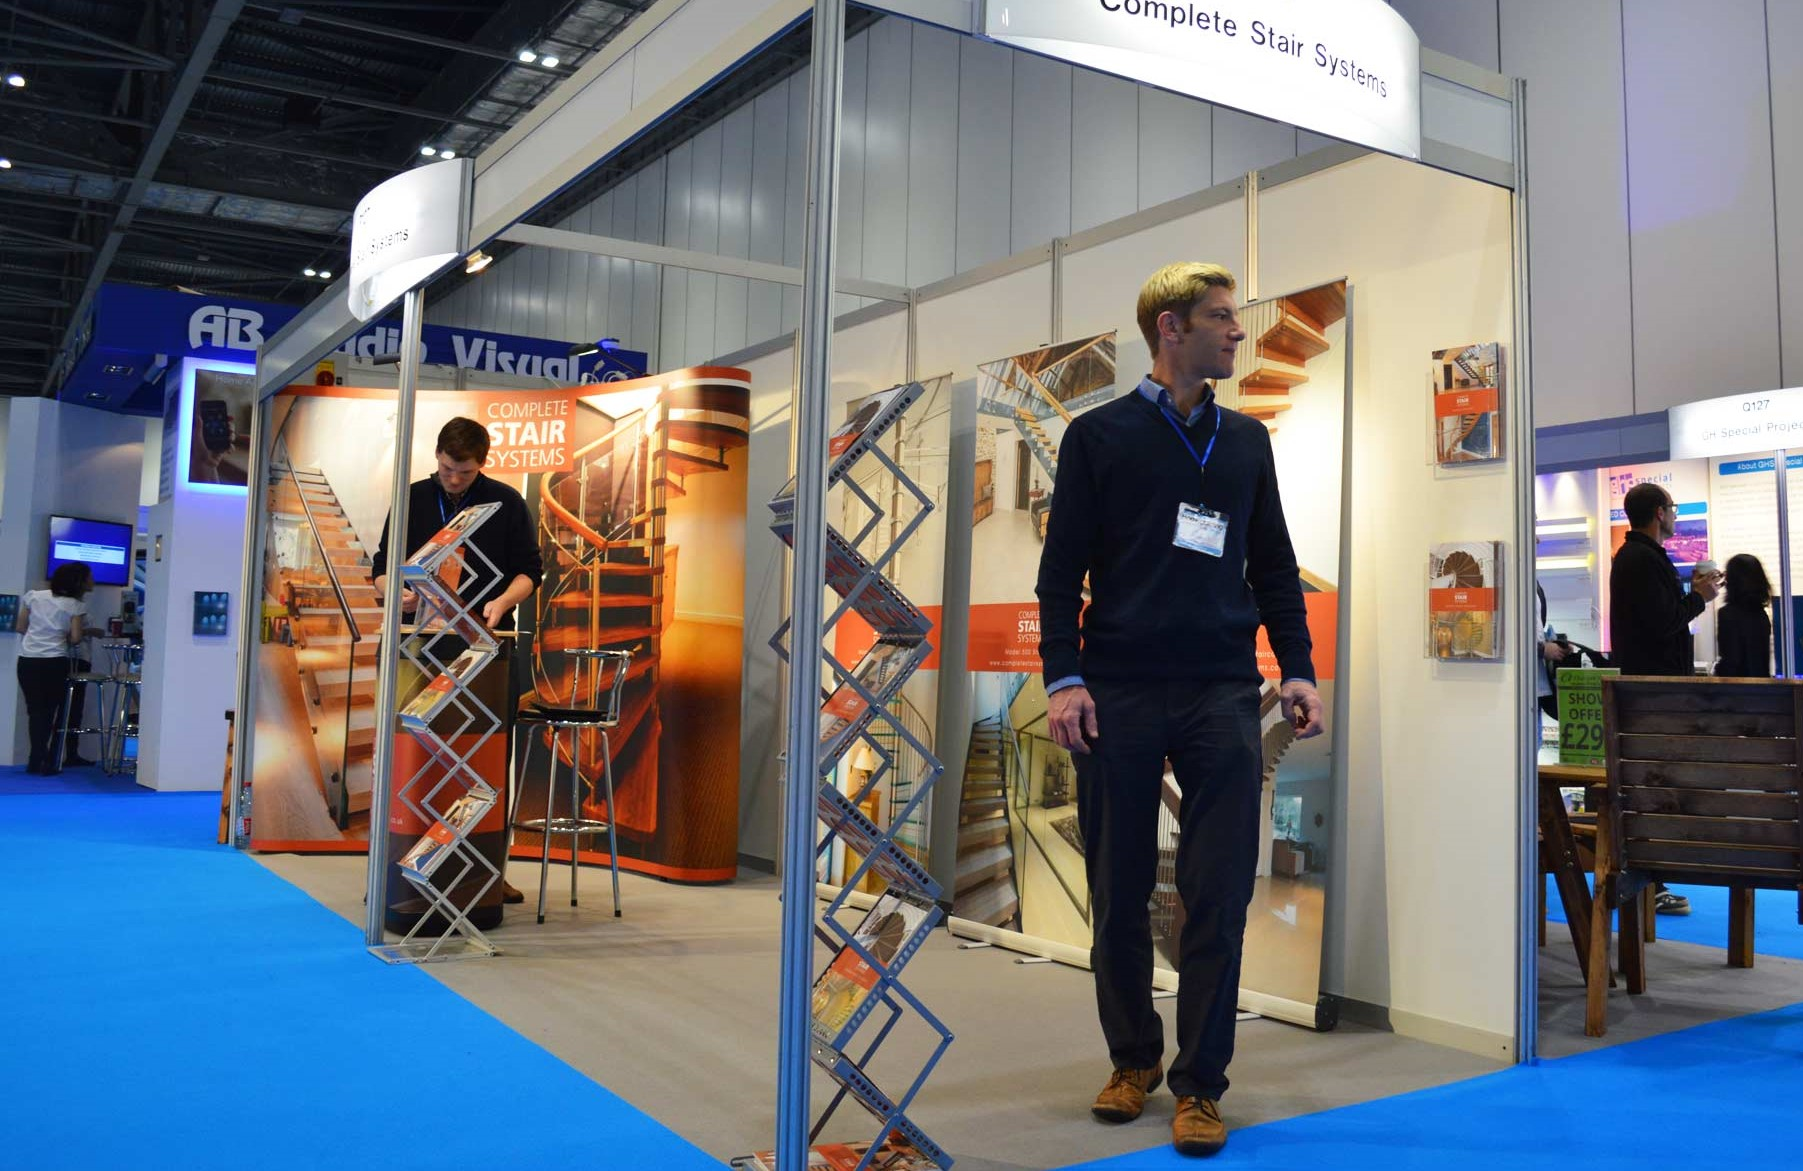 The Complete Stair Systems stand at an older exhibition